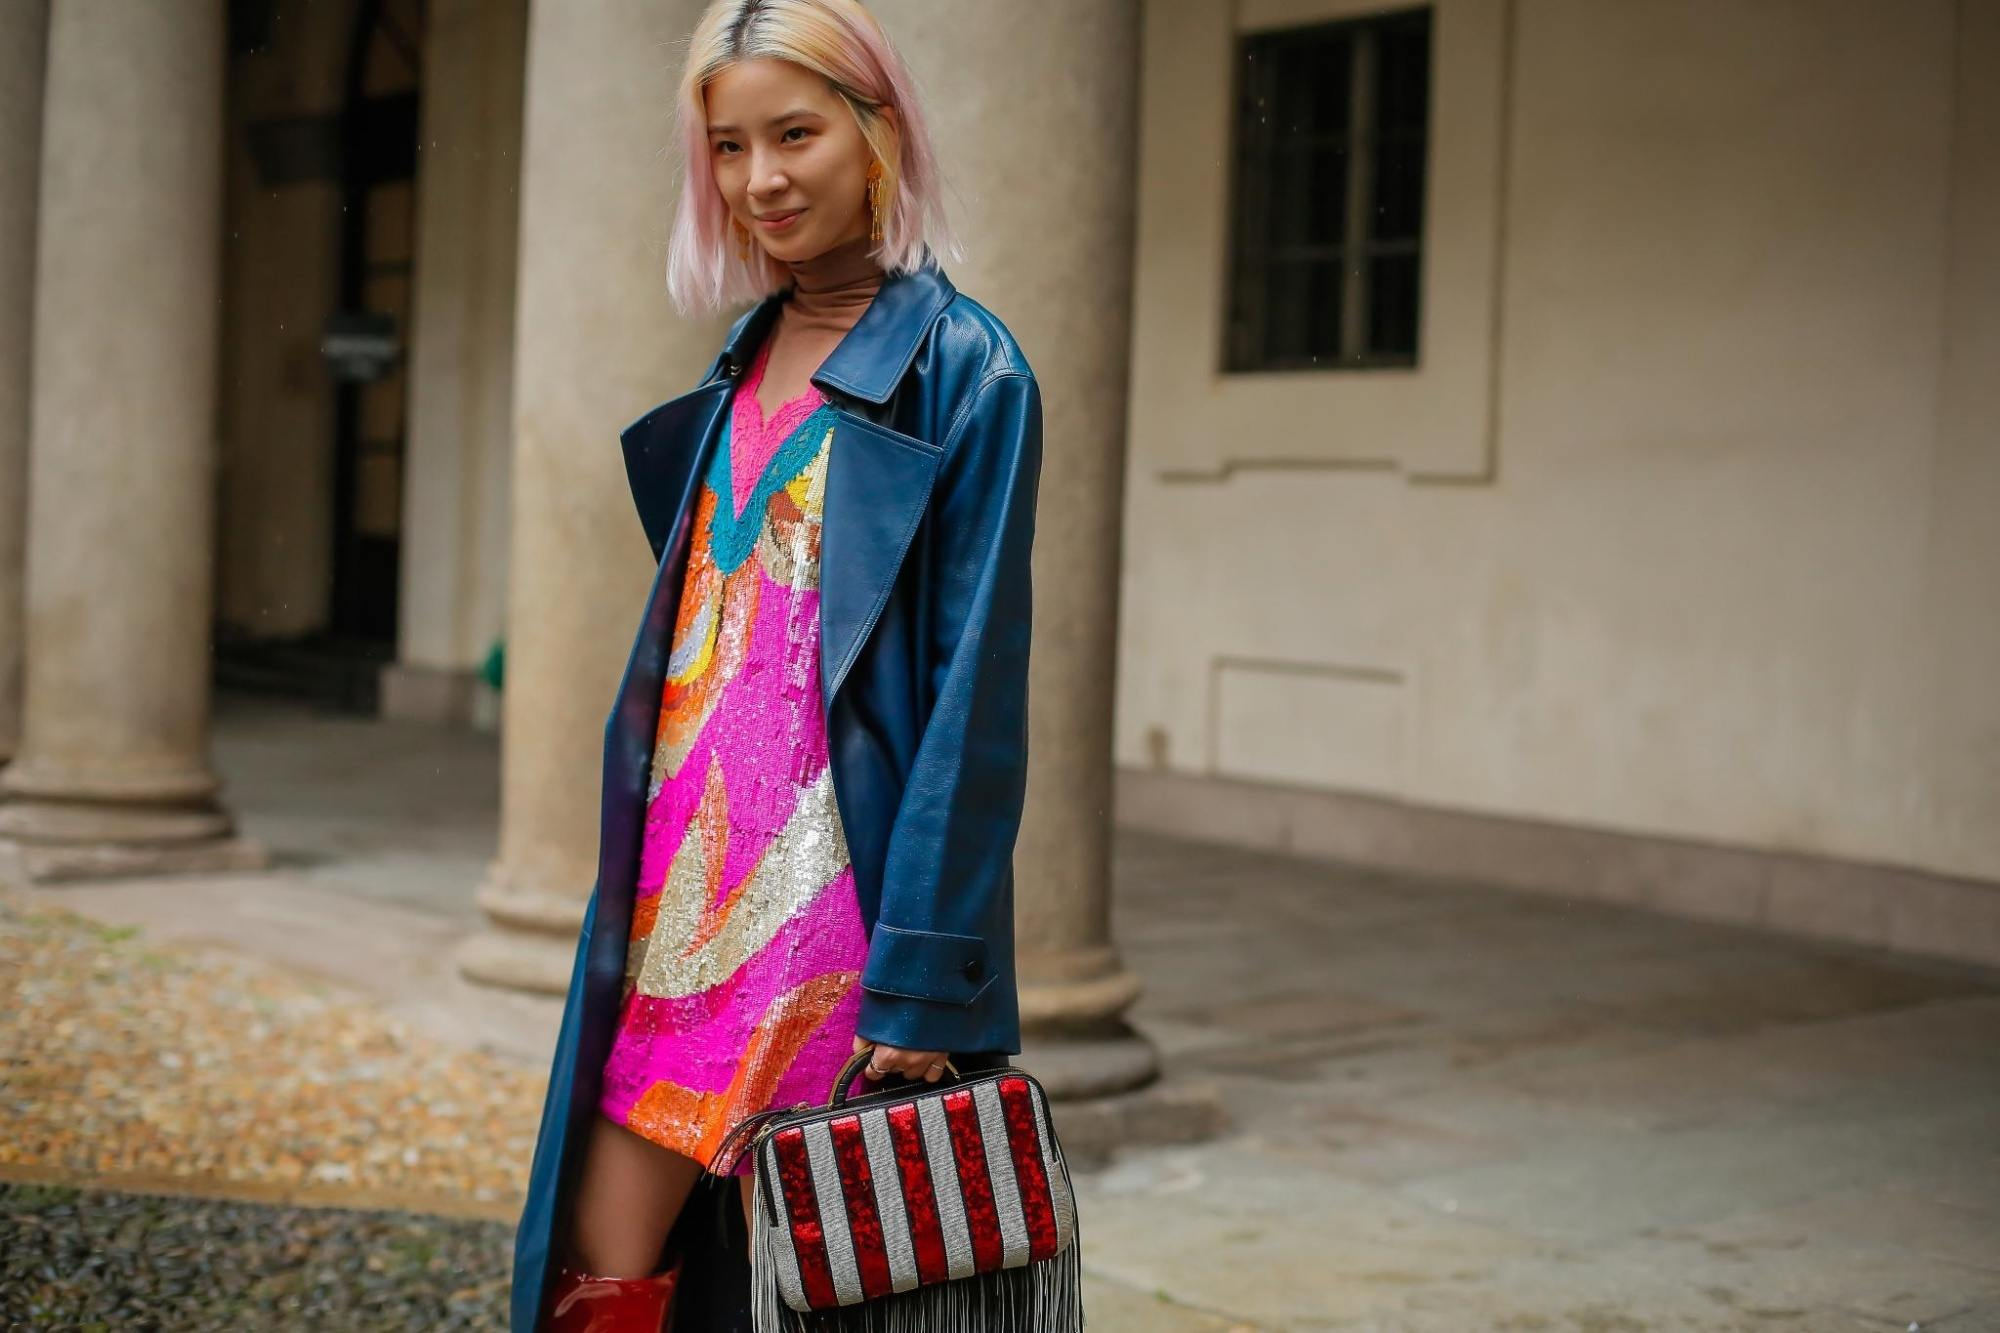 Asian woman with short blonde hair wearing a blue coat and pink dress outdoors